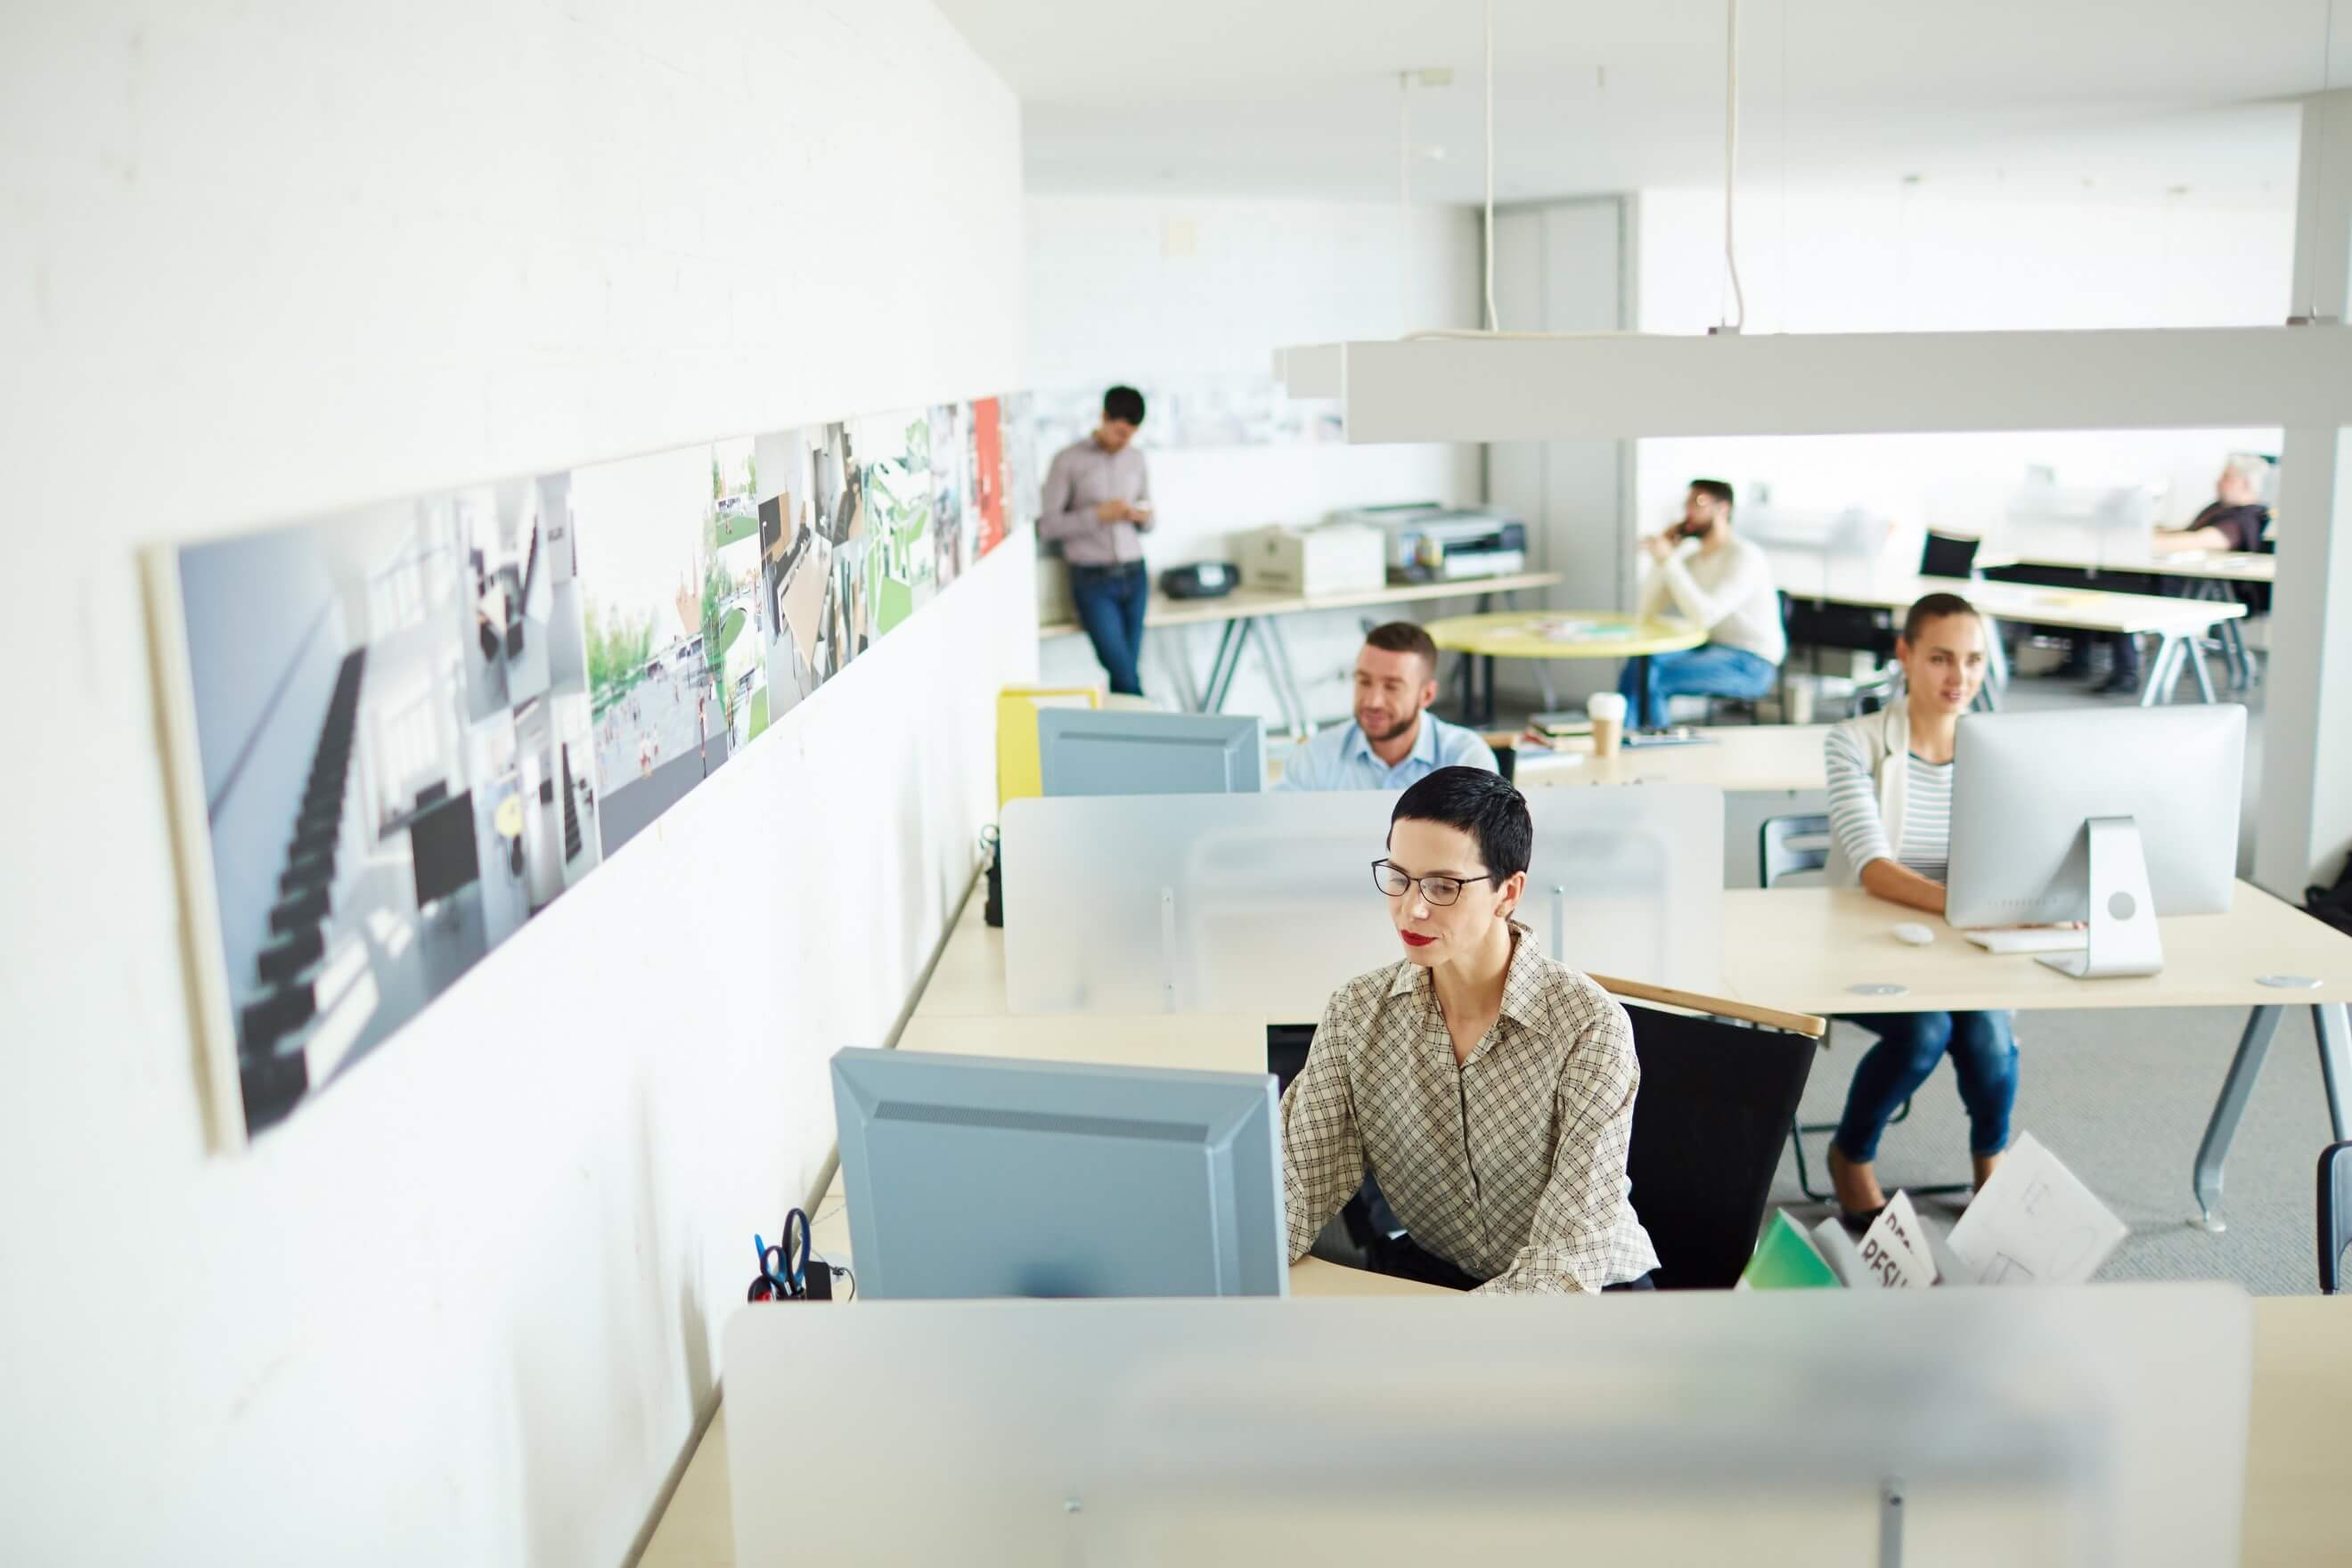 How to Supply a Harmonious Shared Office Space